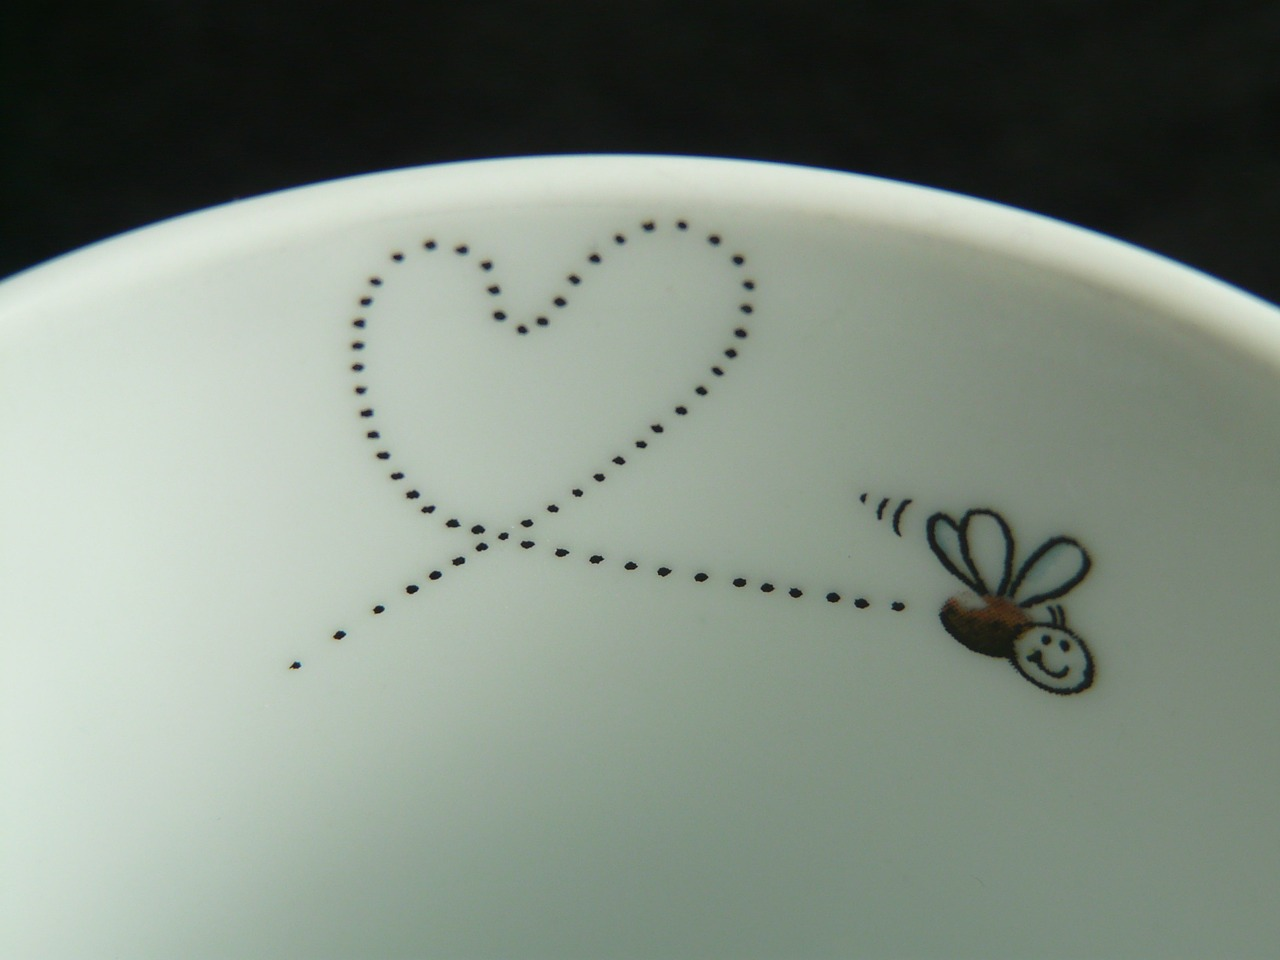 fly mosquito heart free photo